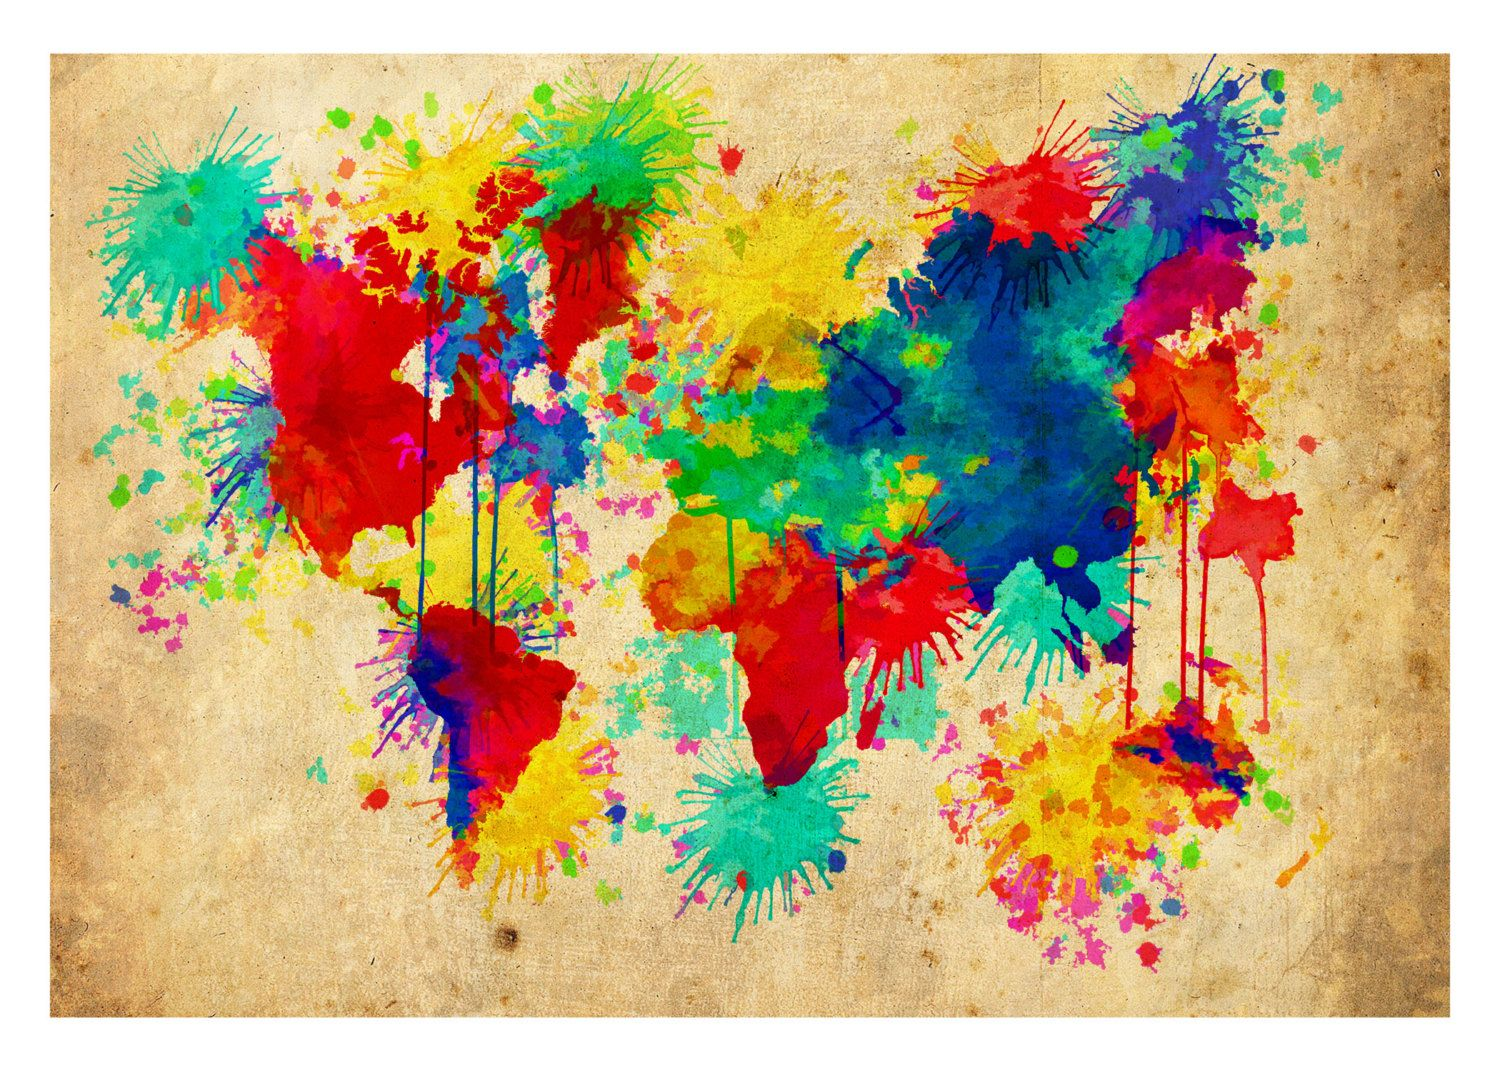 World map 20x30 abstract splatter art vintage background 2995 world map 20x30 abstract splatter art vintage background 2995 via etsy gumiabroncs Gallery